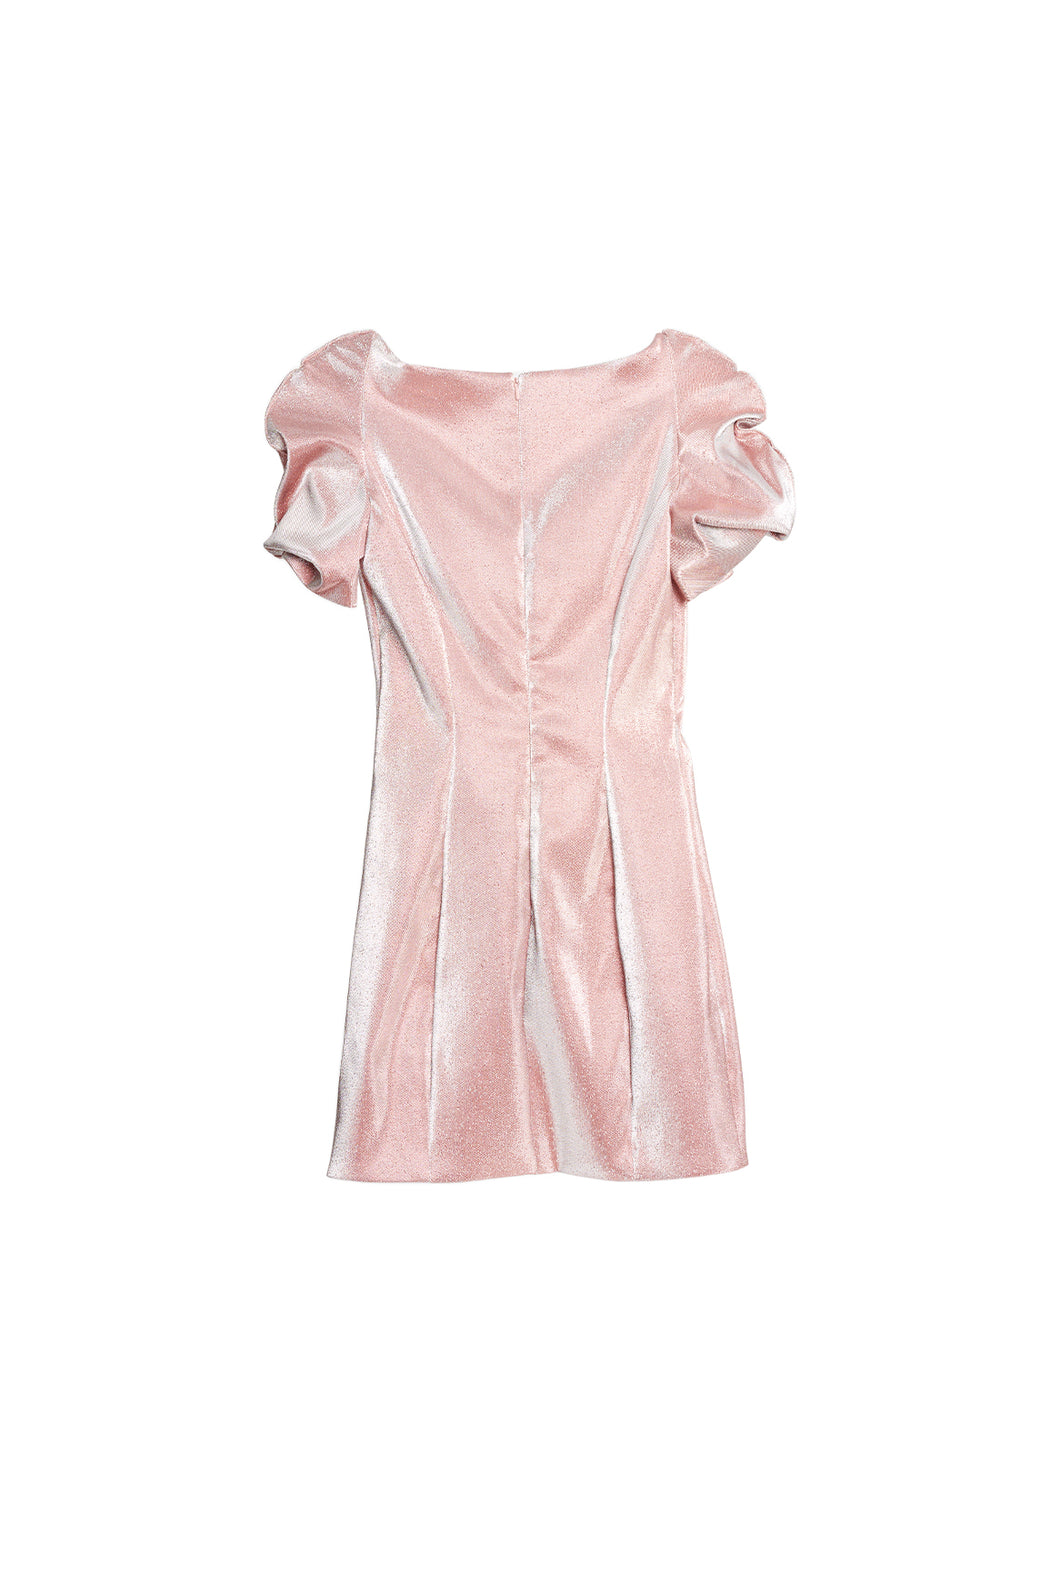 Balloon Sleeve Dress - Pink